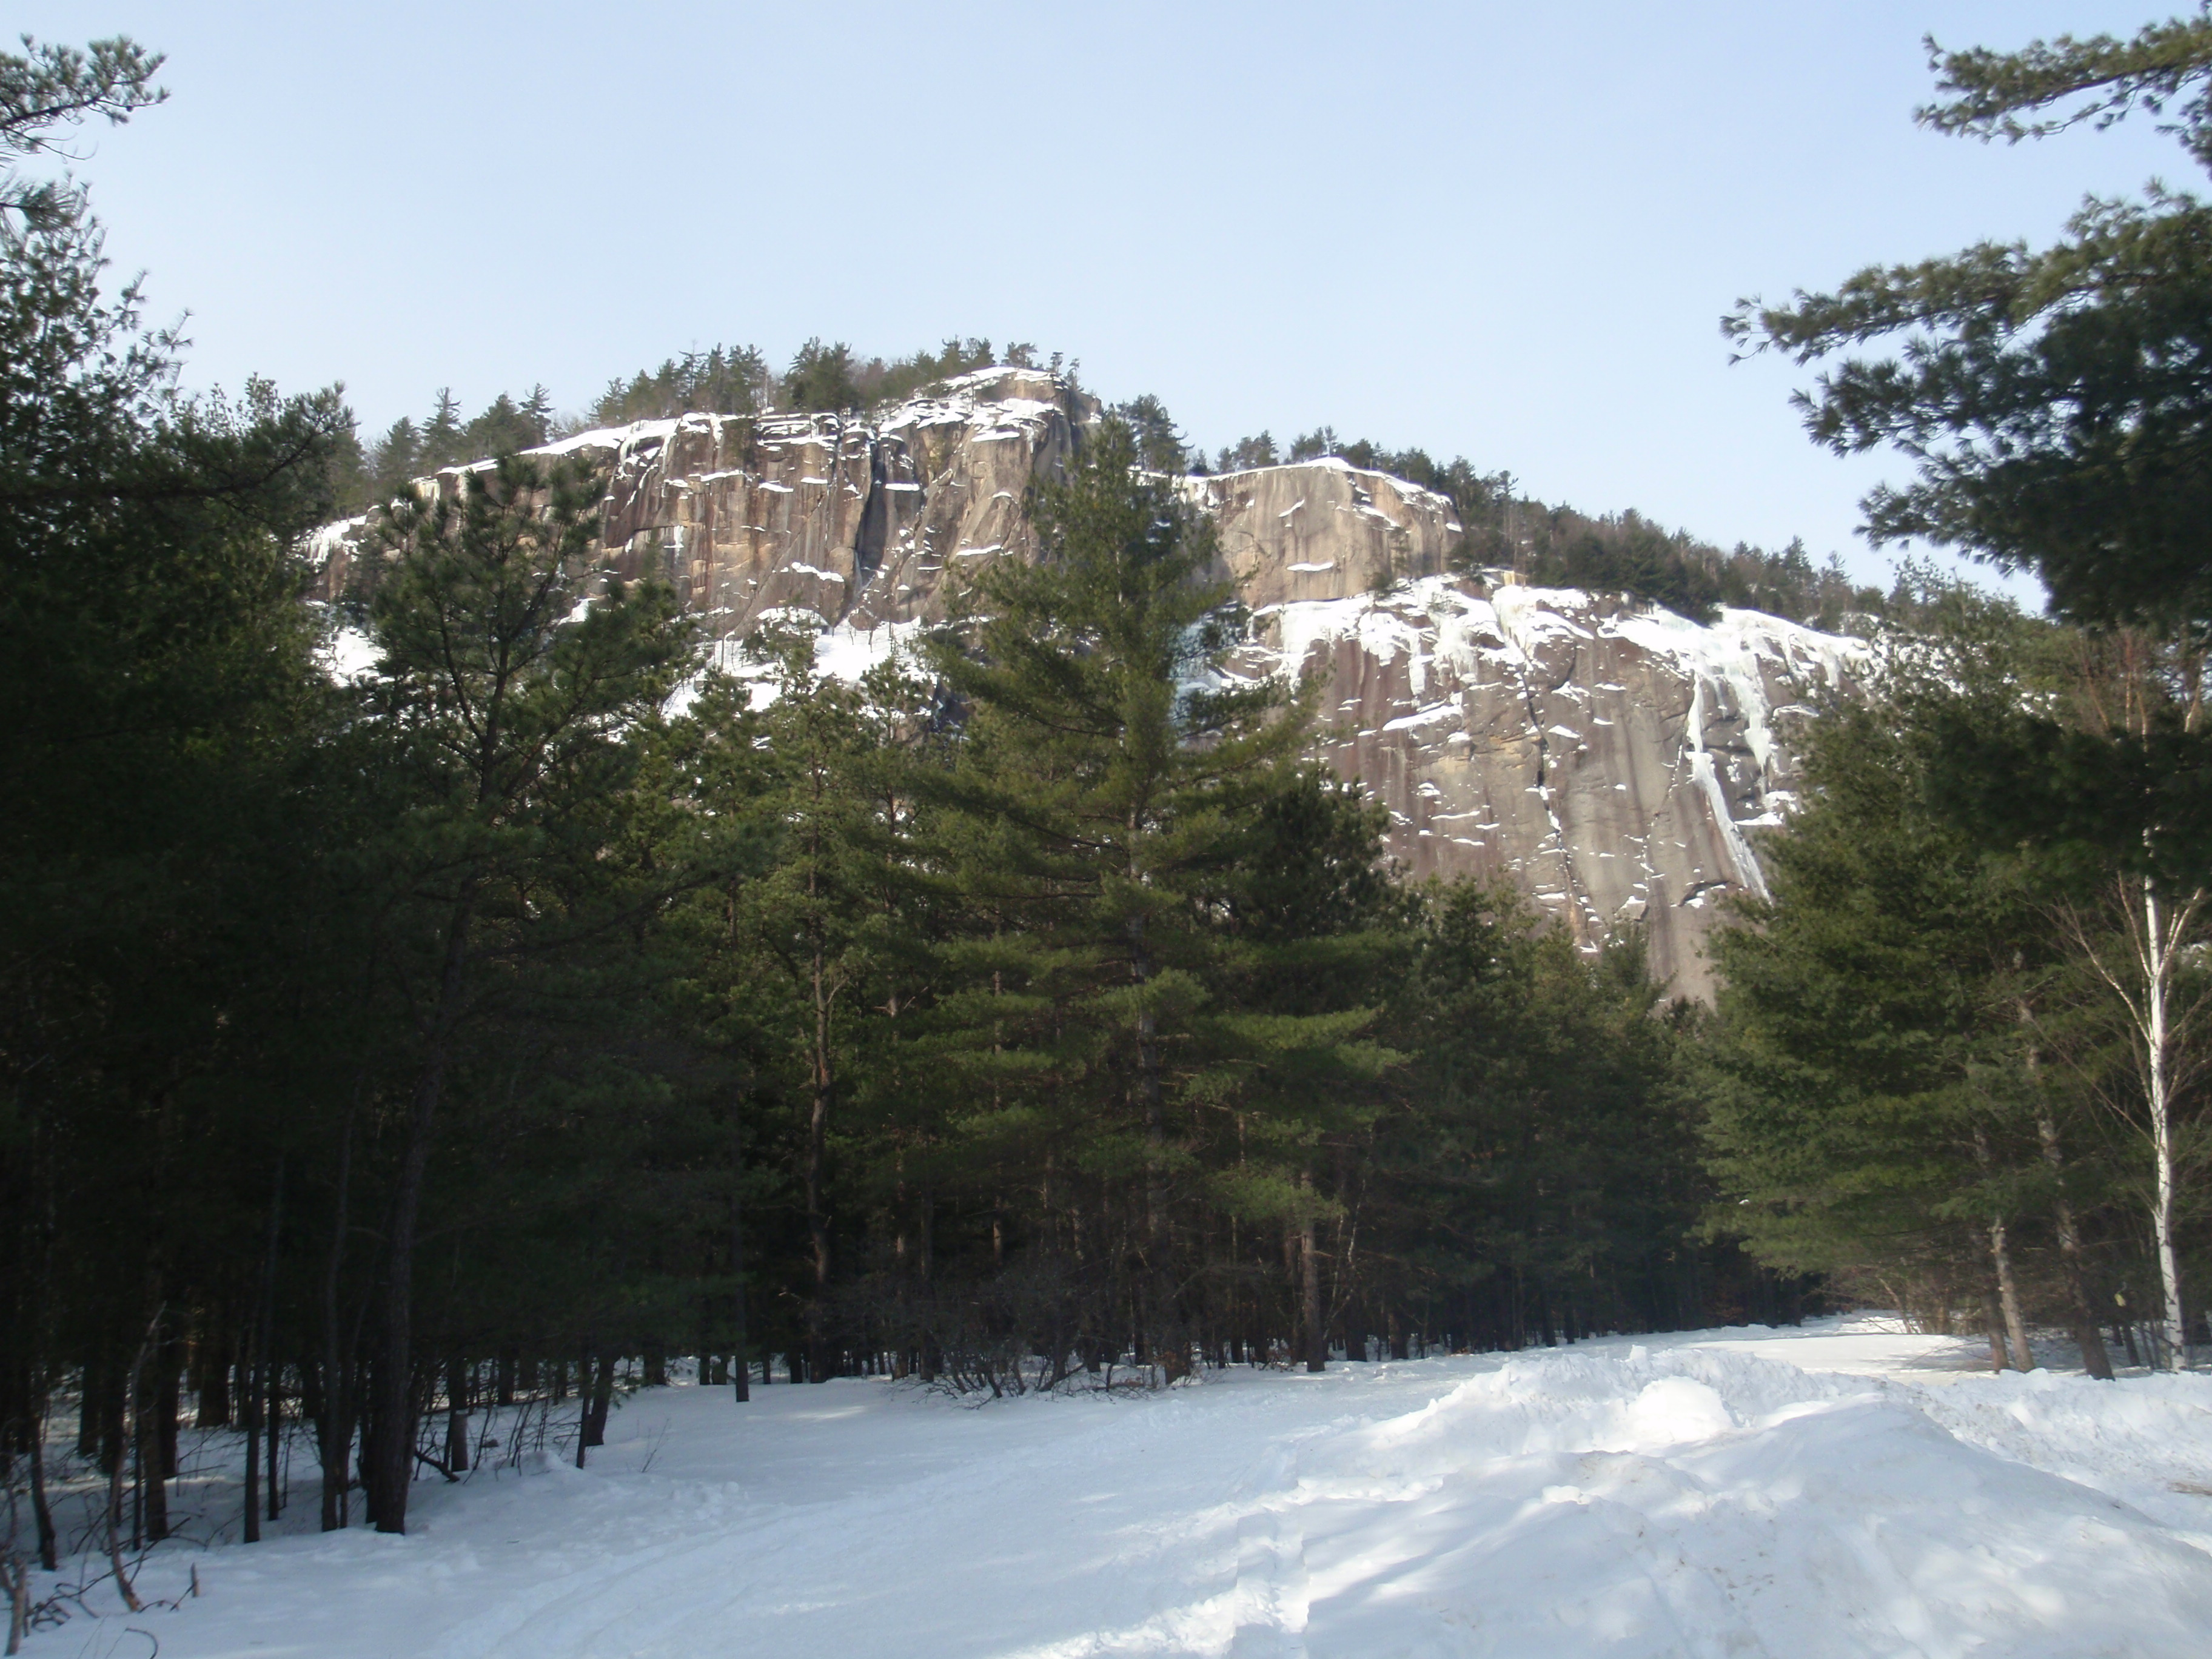 Cathedral Ledge, Echo Lake State Park, White Mountains, New Hampshire